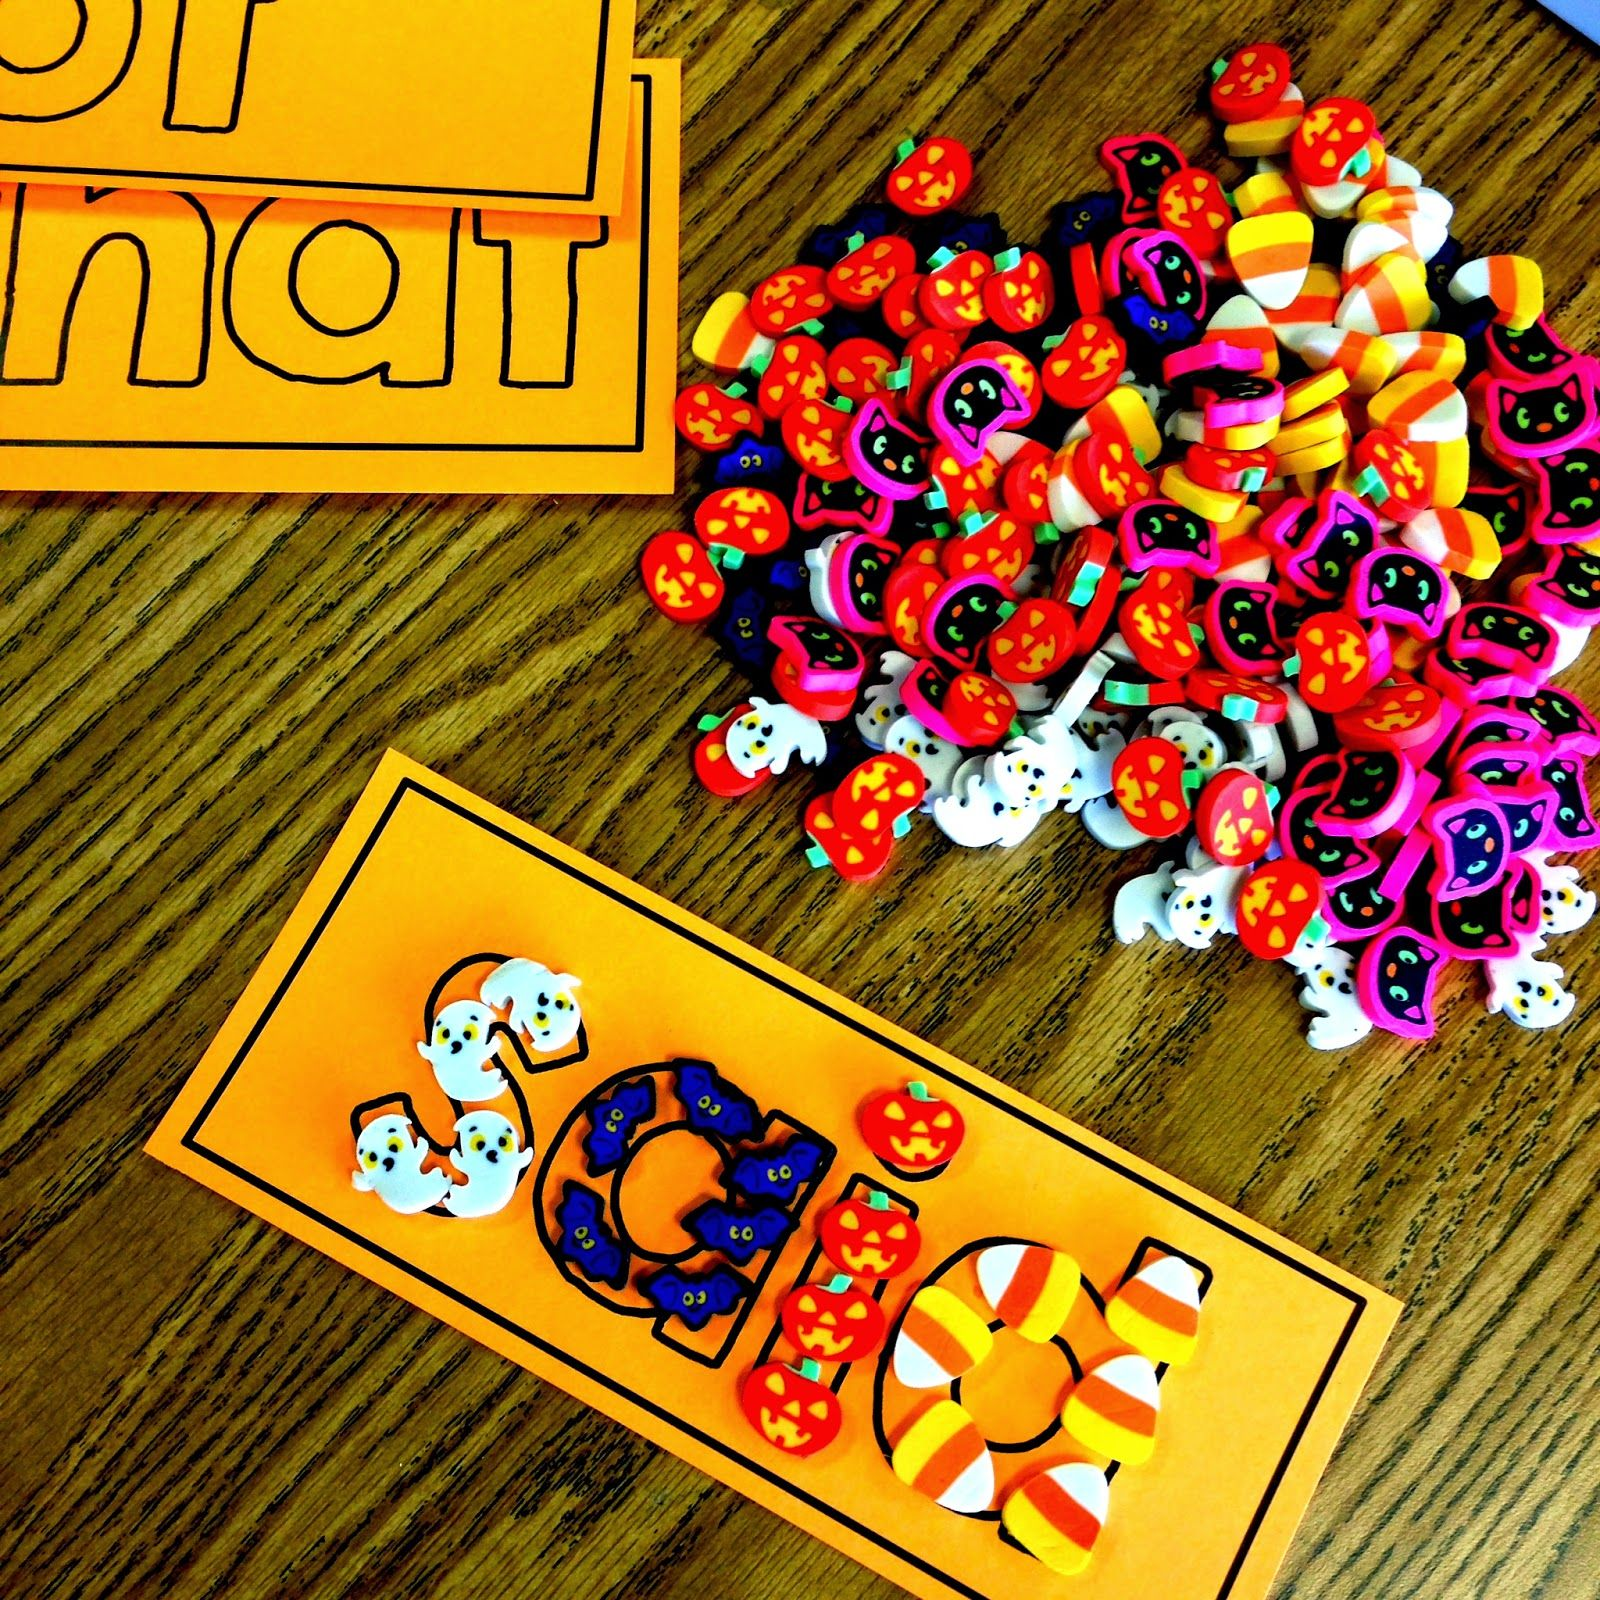 Sight Word Activities Another Fun Way For Kiddos To Do